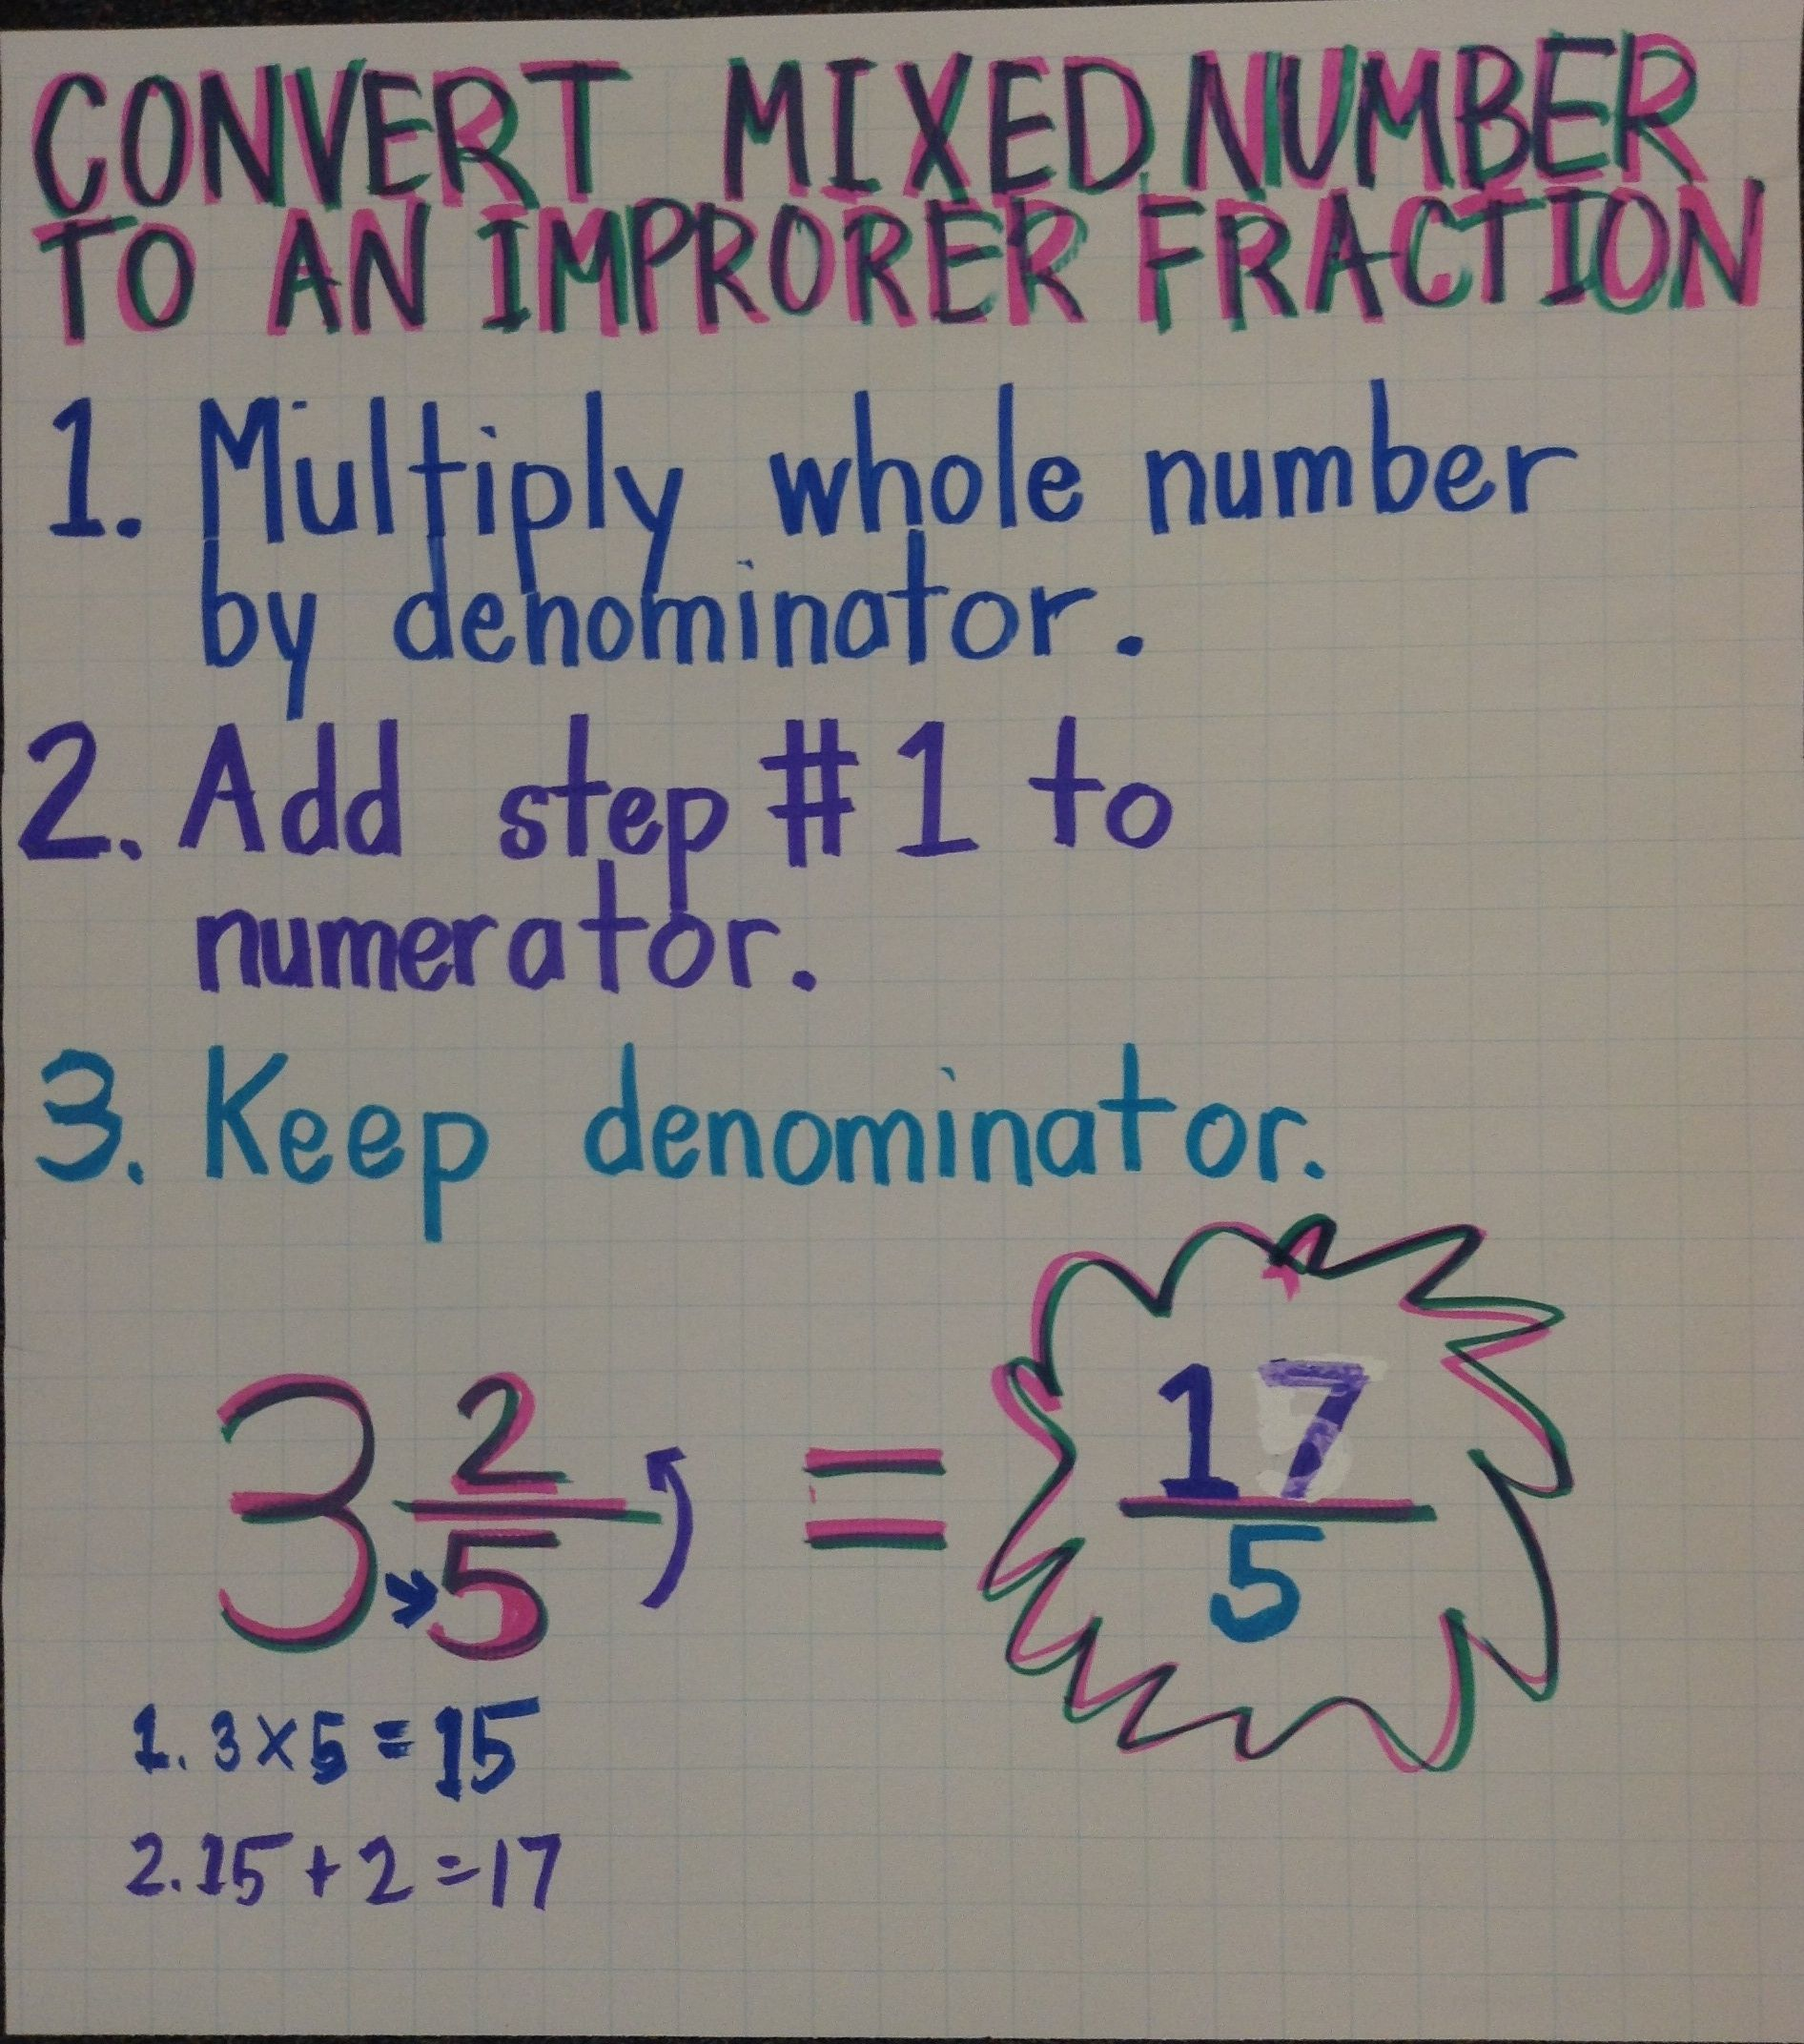 Convert Mixed Number To An Improper Fraction